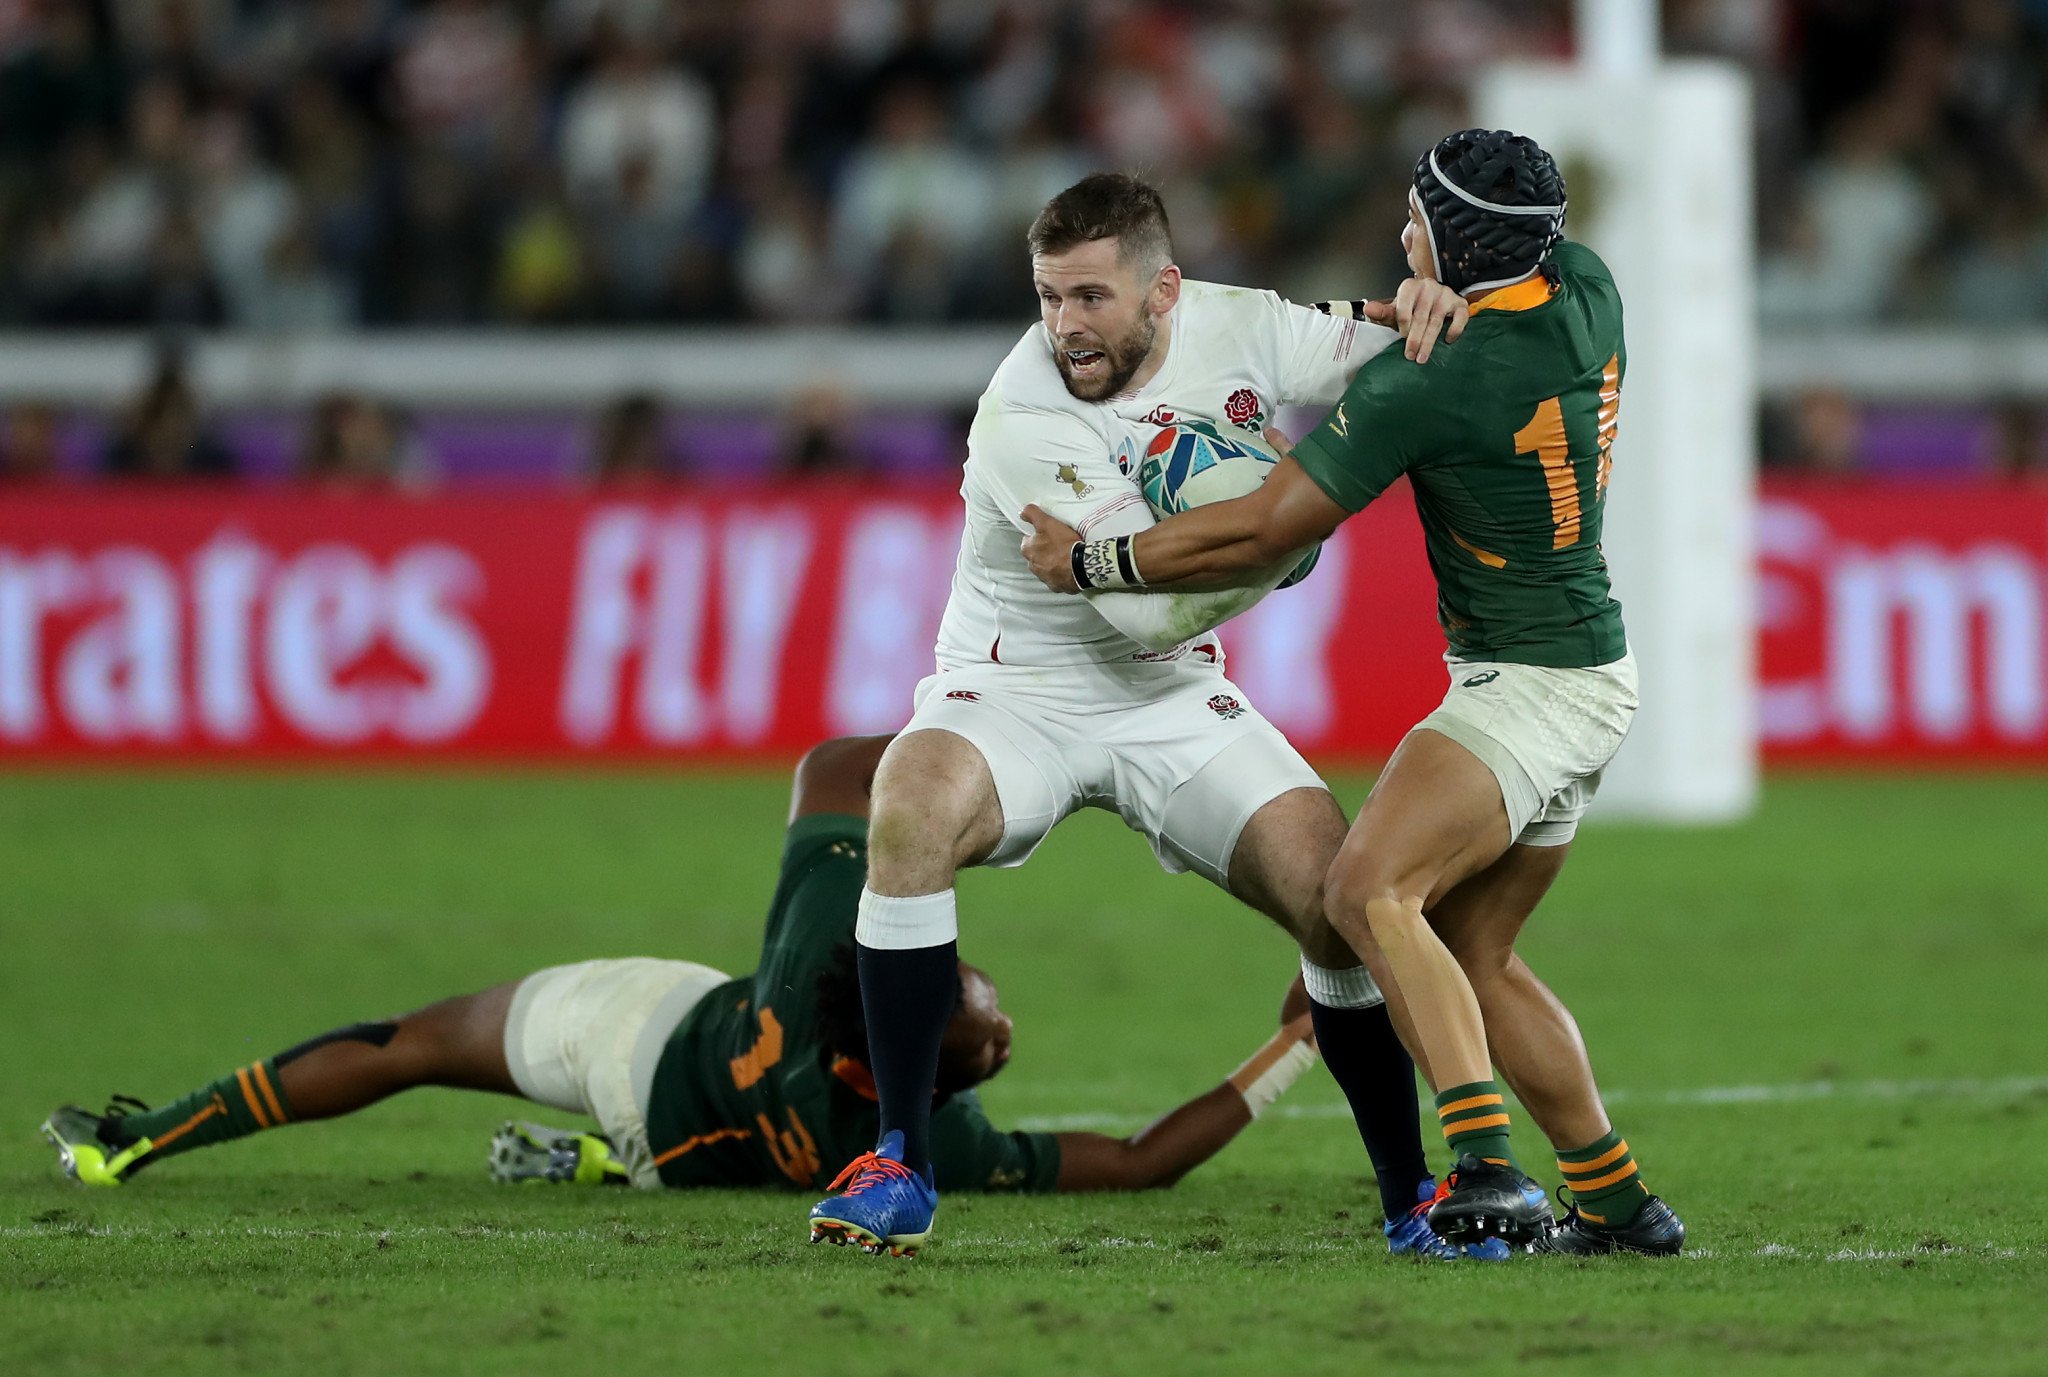 World Rugby report reduction in concussion rates at Japan 2019